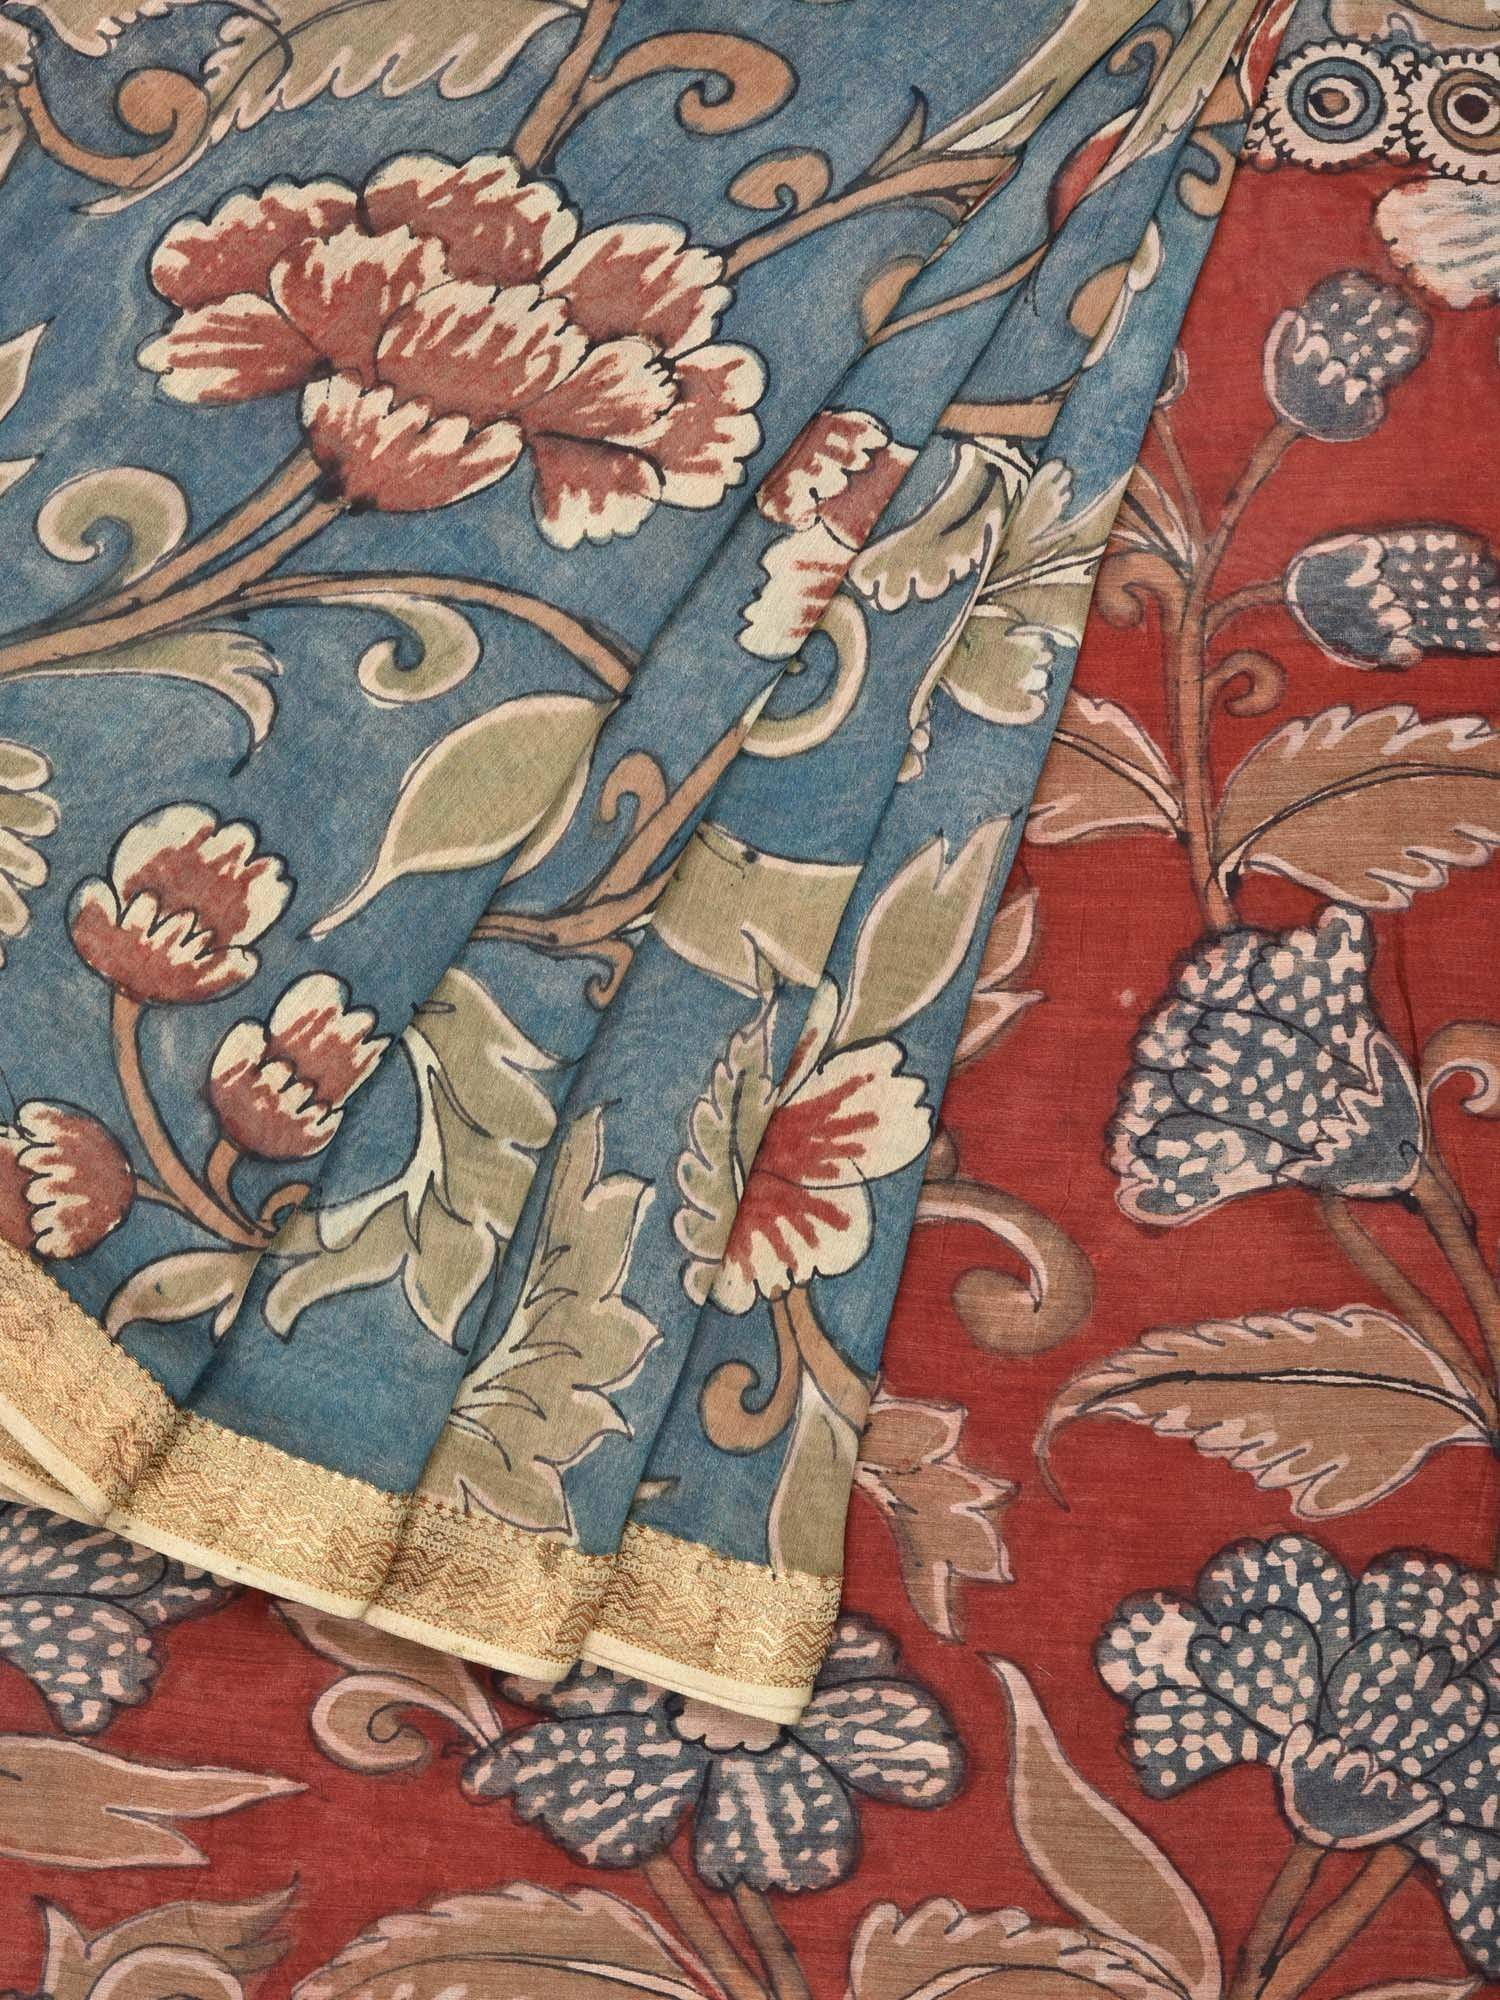 Teal and Red Kalamkari Hand Painted Cotton Silk Handloom Saree with Flowers and Leaves Design KL0095